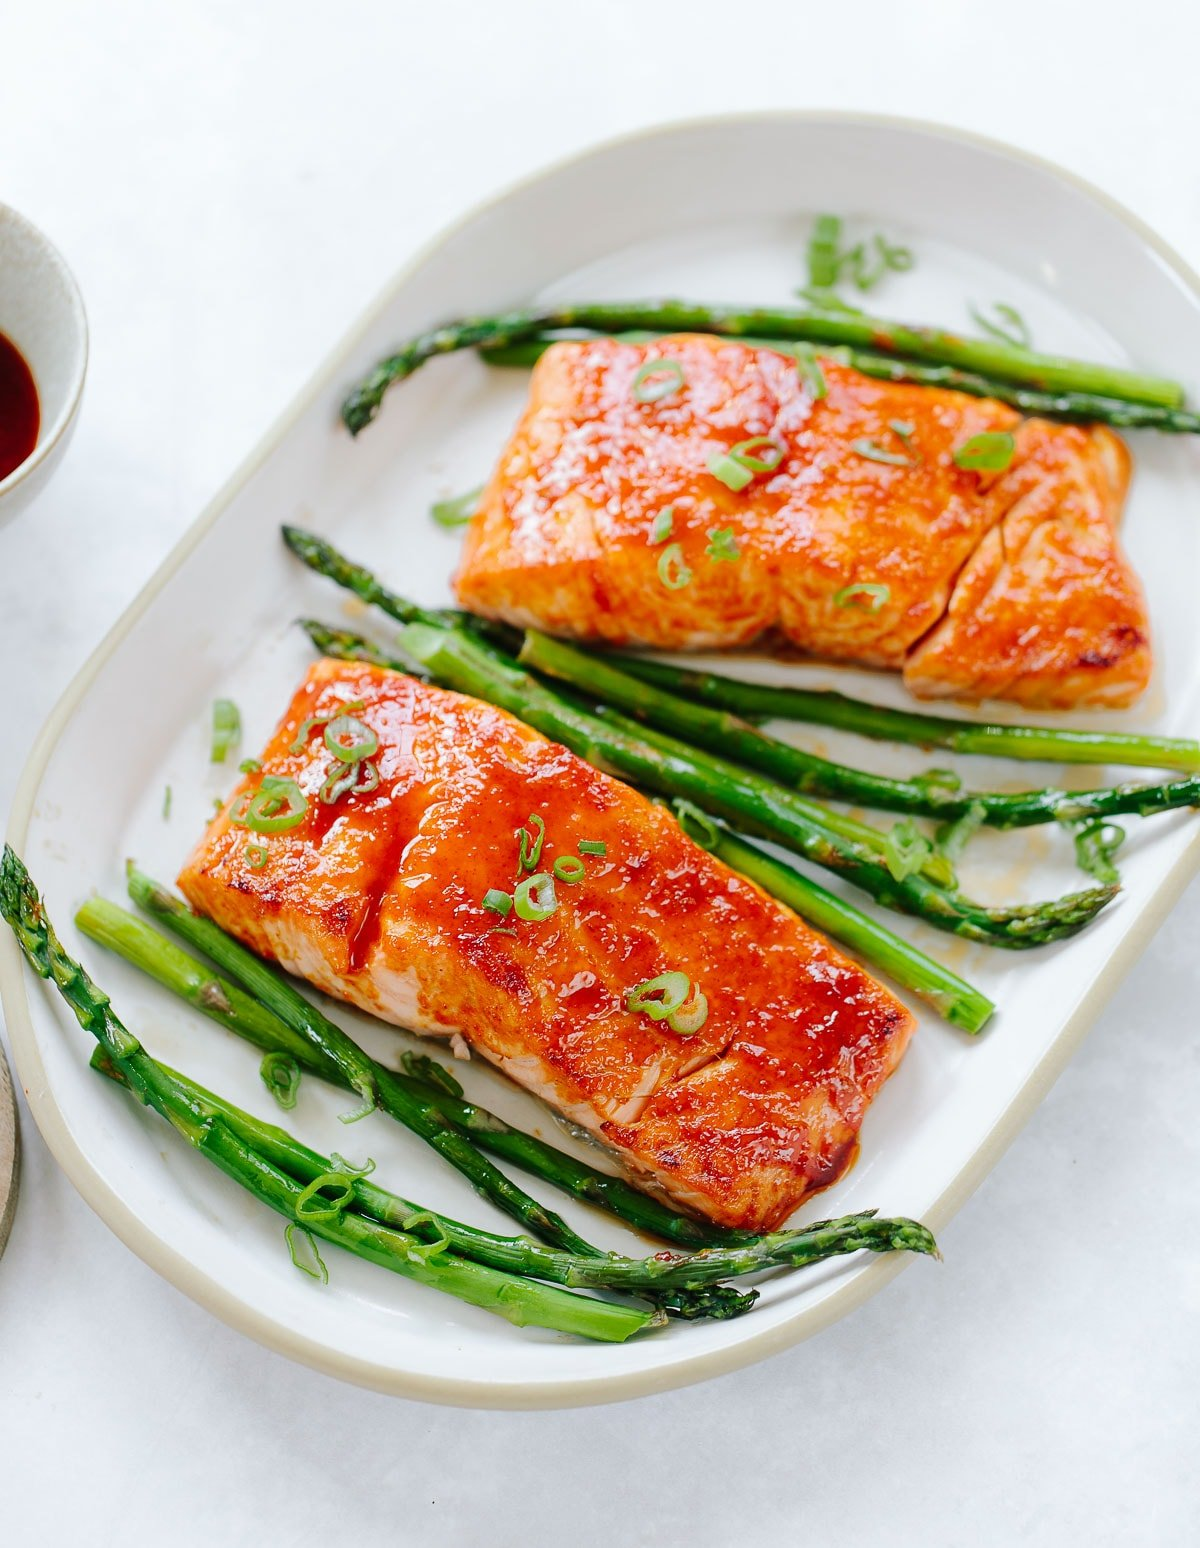 Two glazed salmon fillets on a platter, with grilled asparagus and sliced scallion greens.